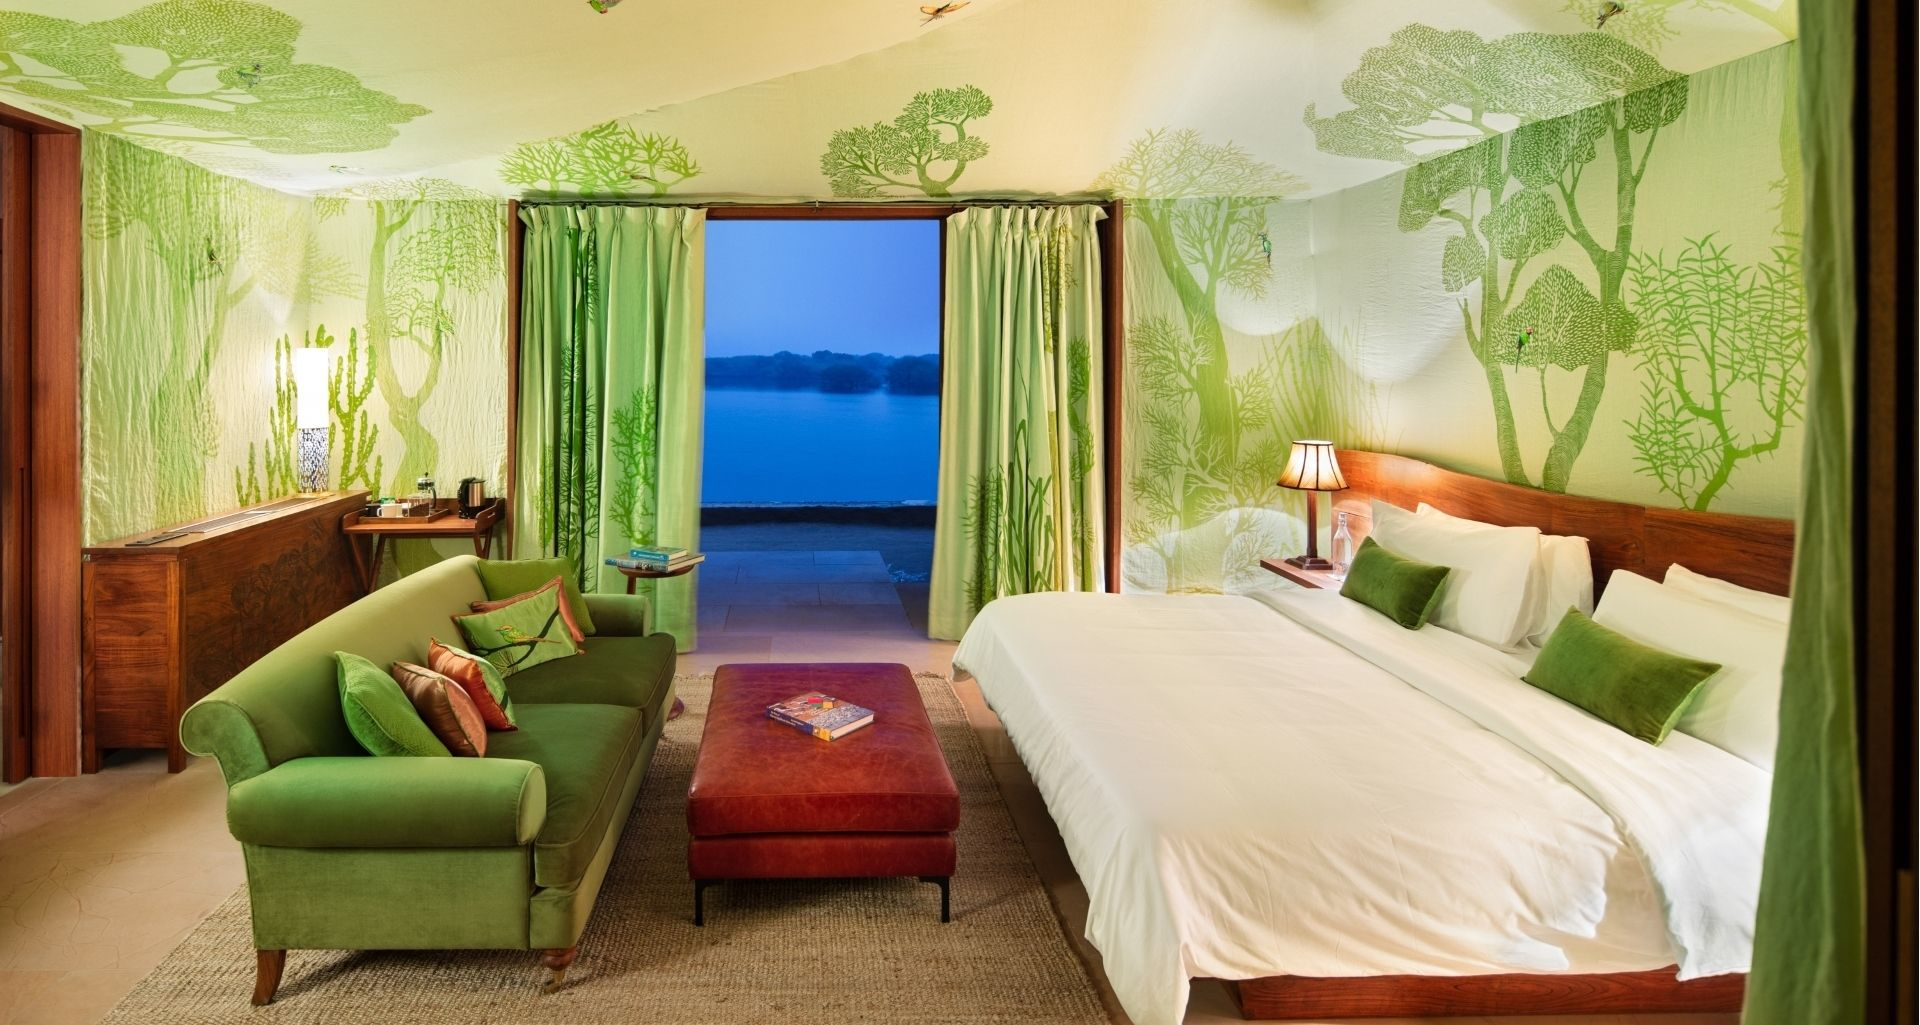 RAAS Chhatrasagar – Luxury tents all have views over the lake